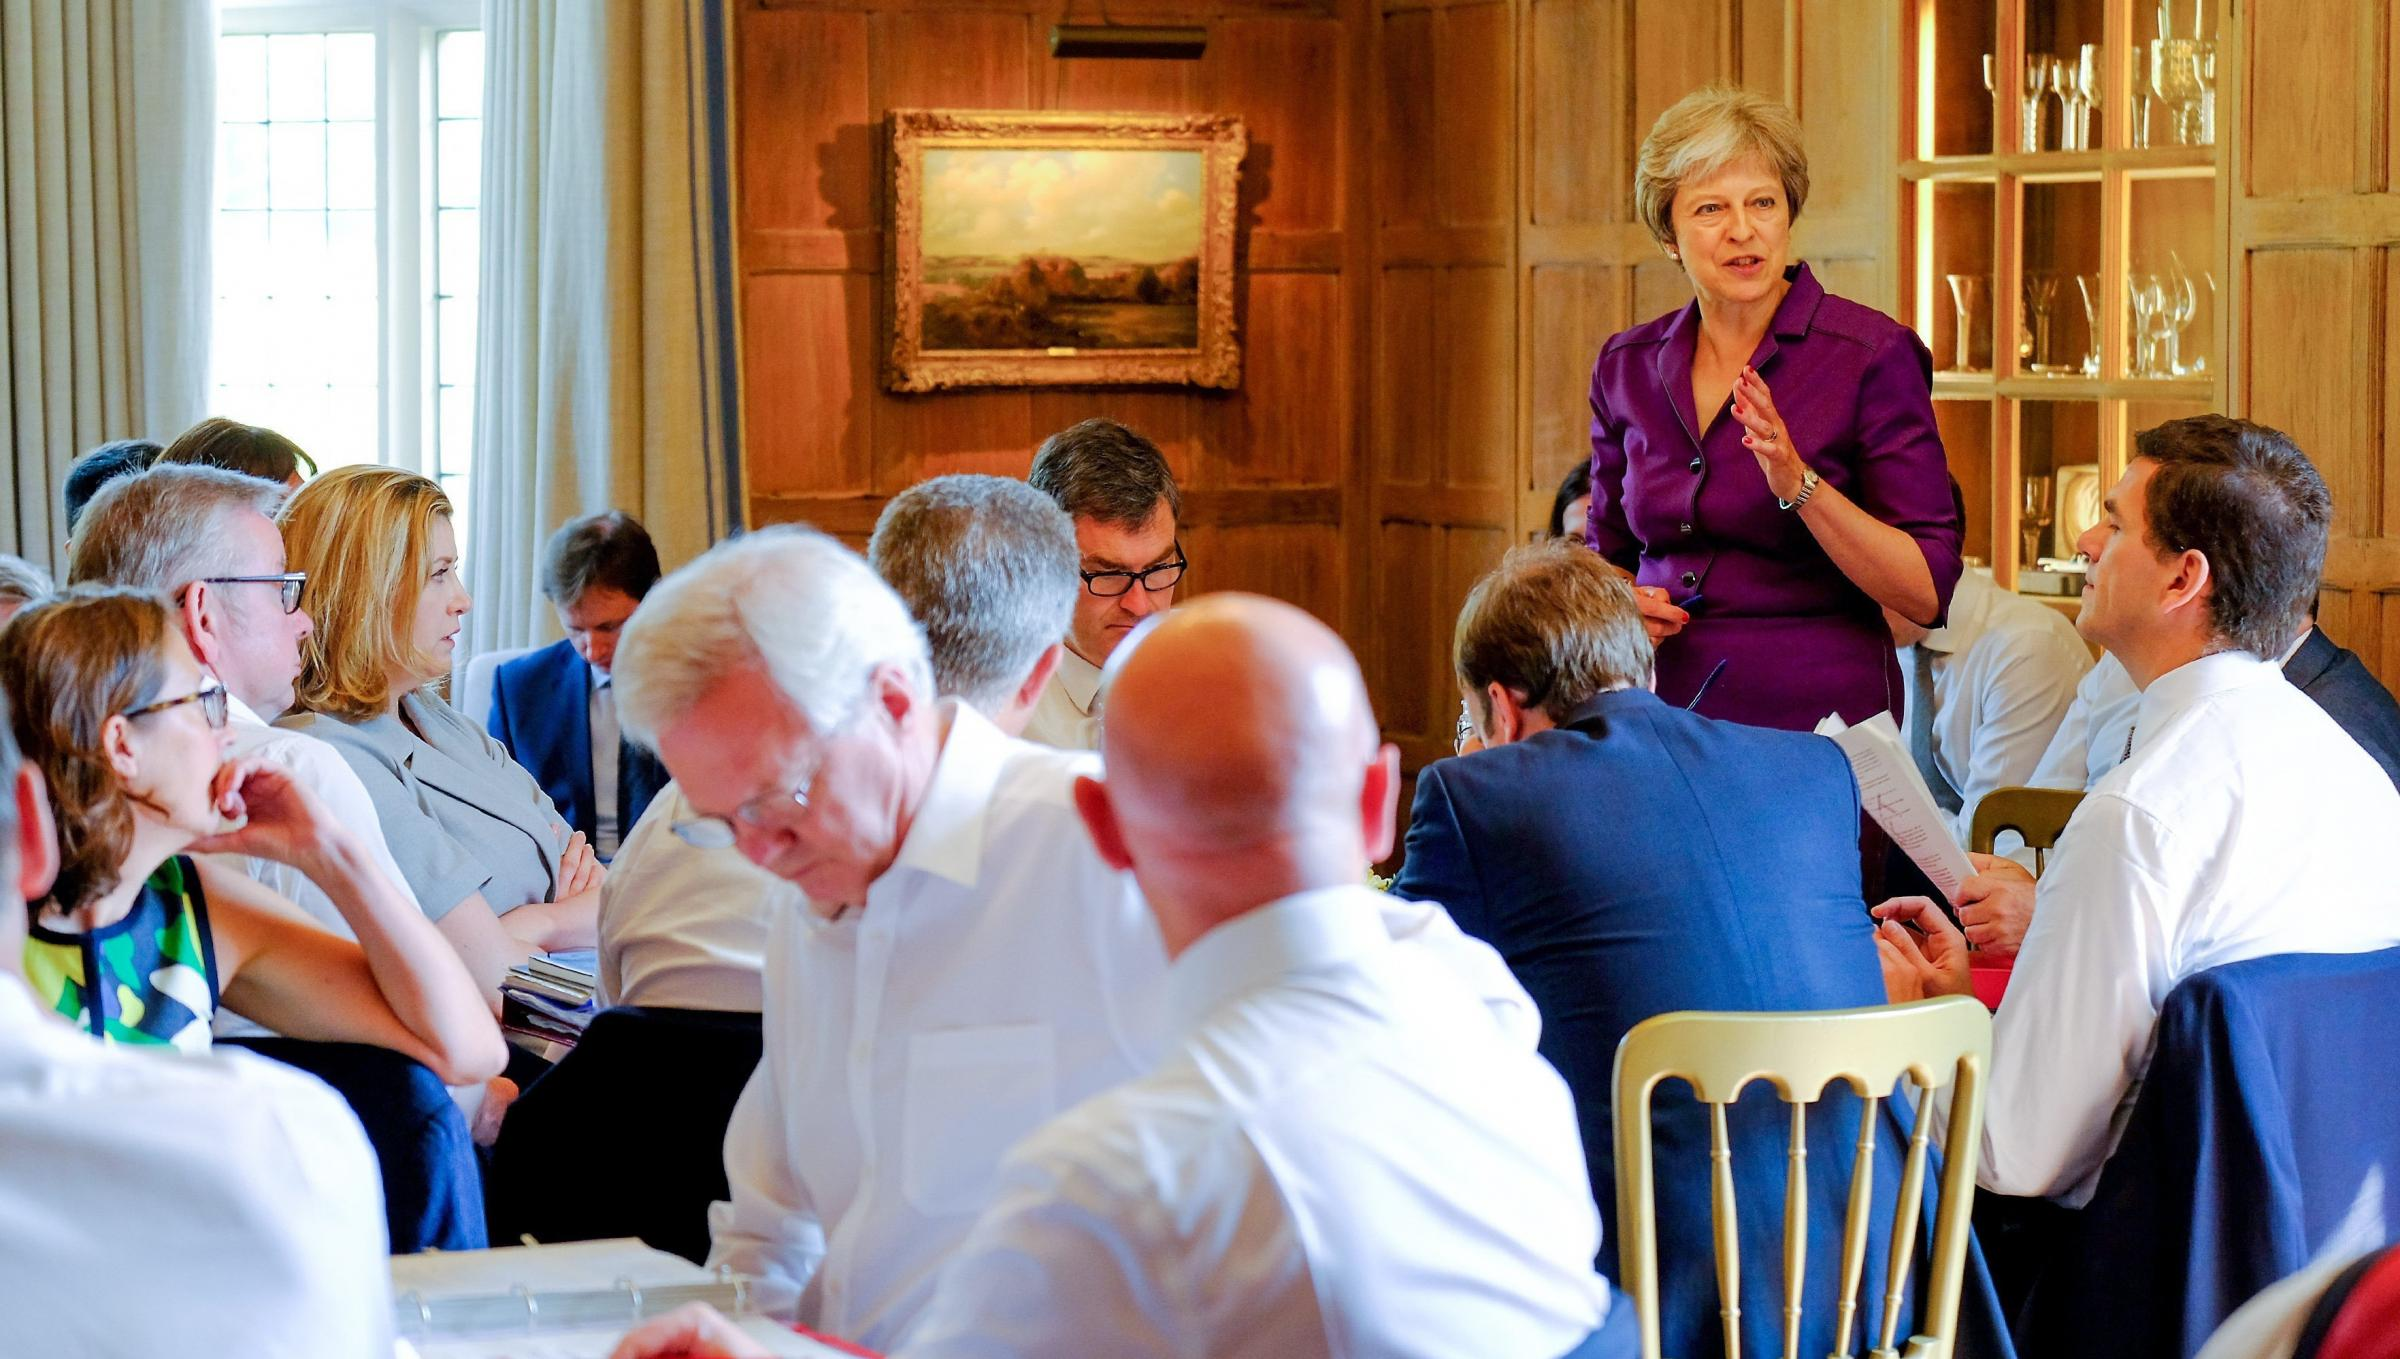 When it comes to May's Chequers plan, 'it's her way, or the highway'